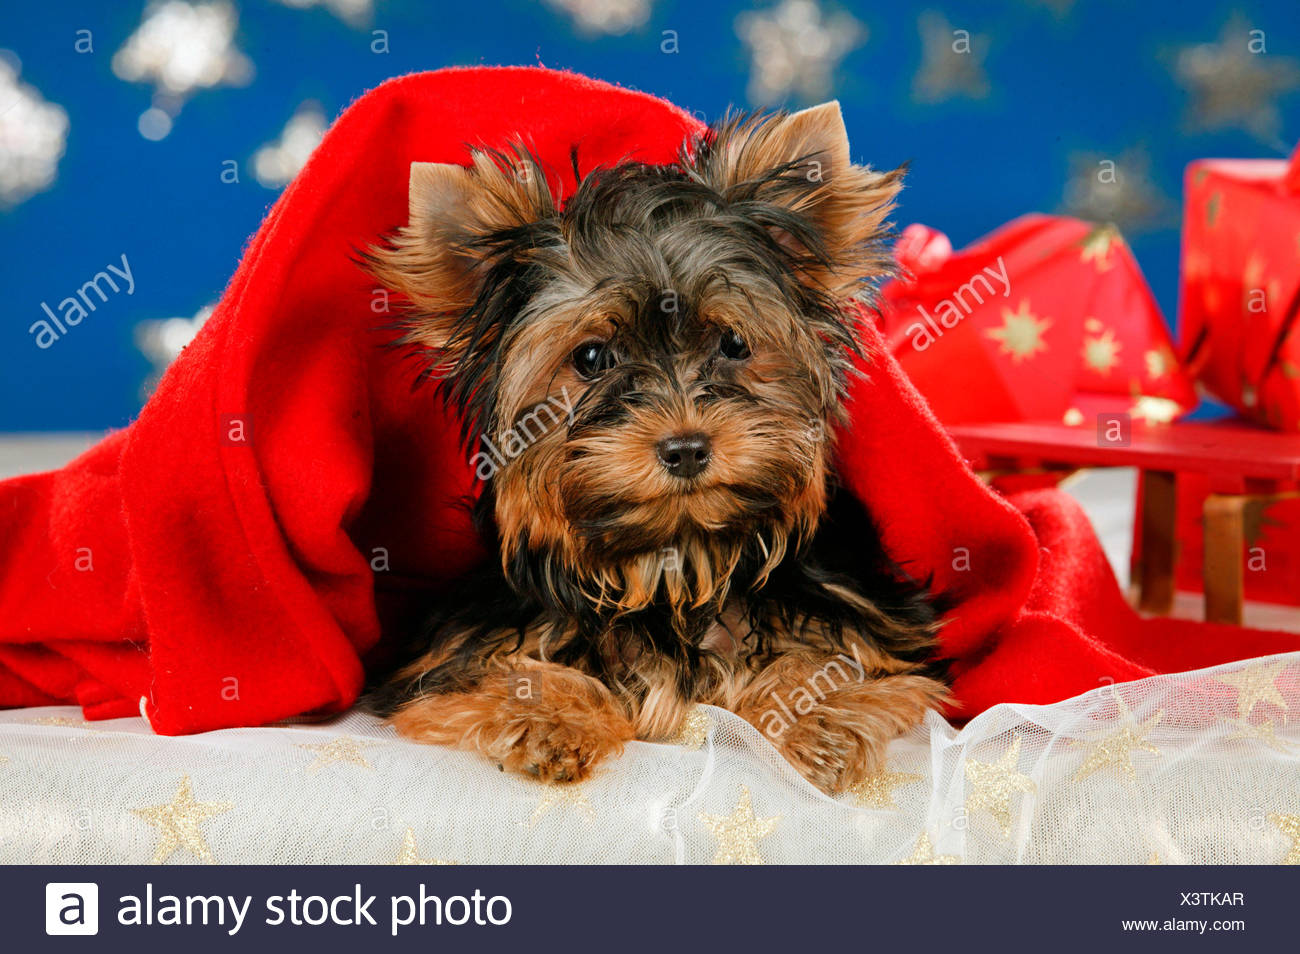 Yorkshire Terrier Christmas Decoration Stock Photo 277751903 Alamy